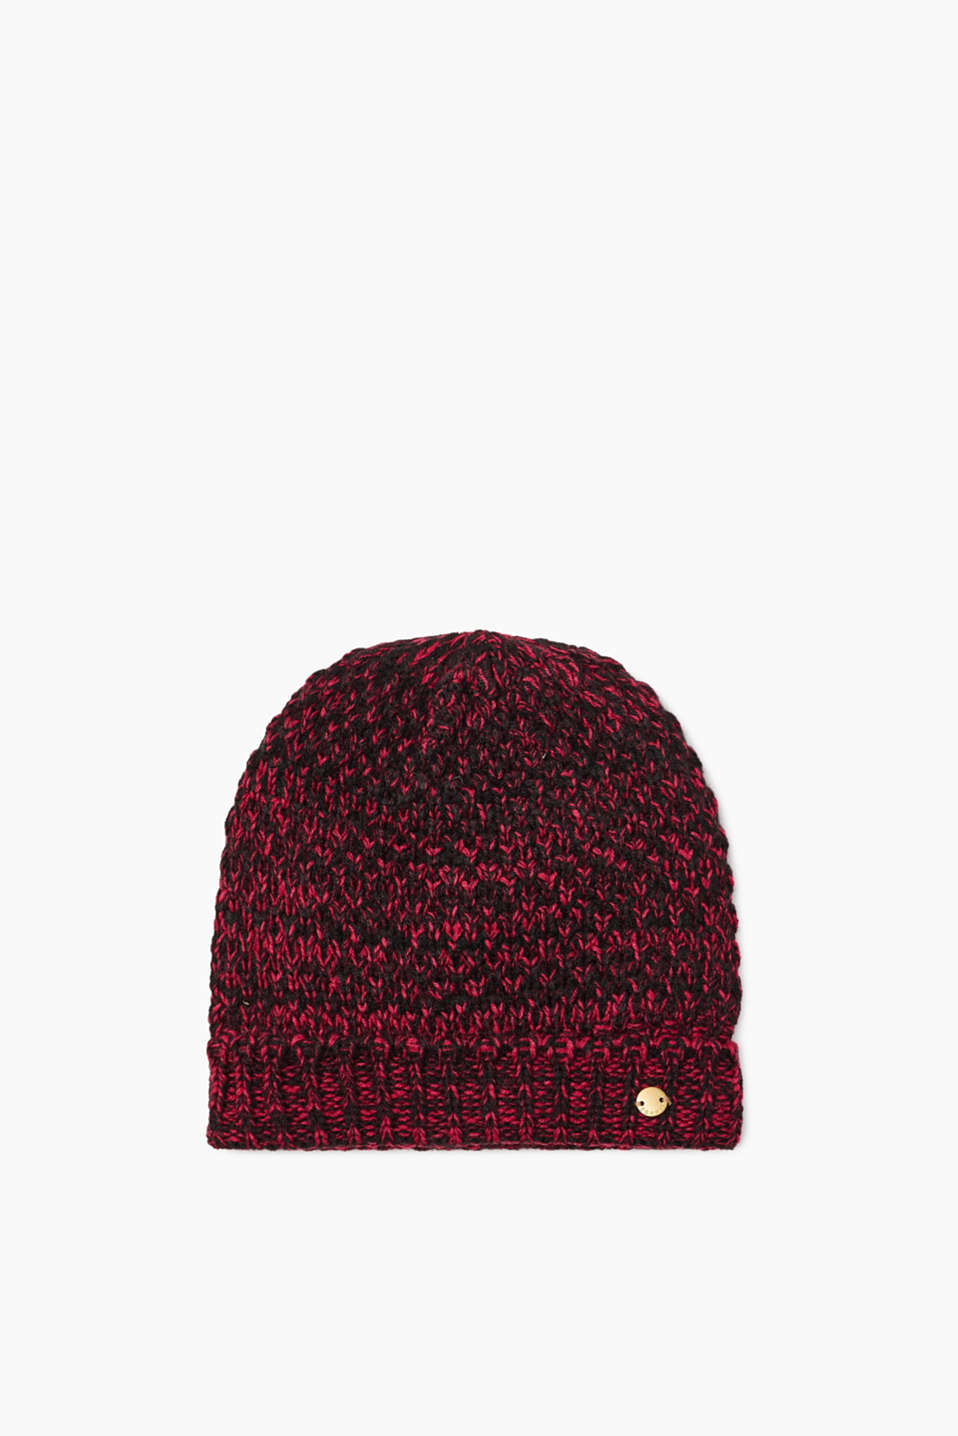 Versatile winter accessory! This knitted hat with an adjustable ribbed cuff and lining is extremely eye-catching.